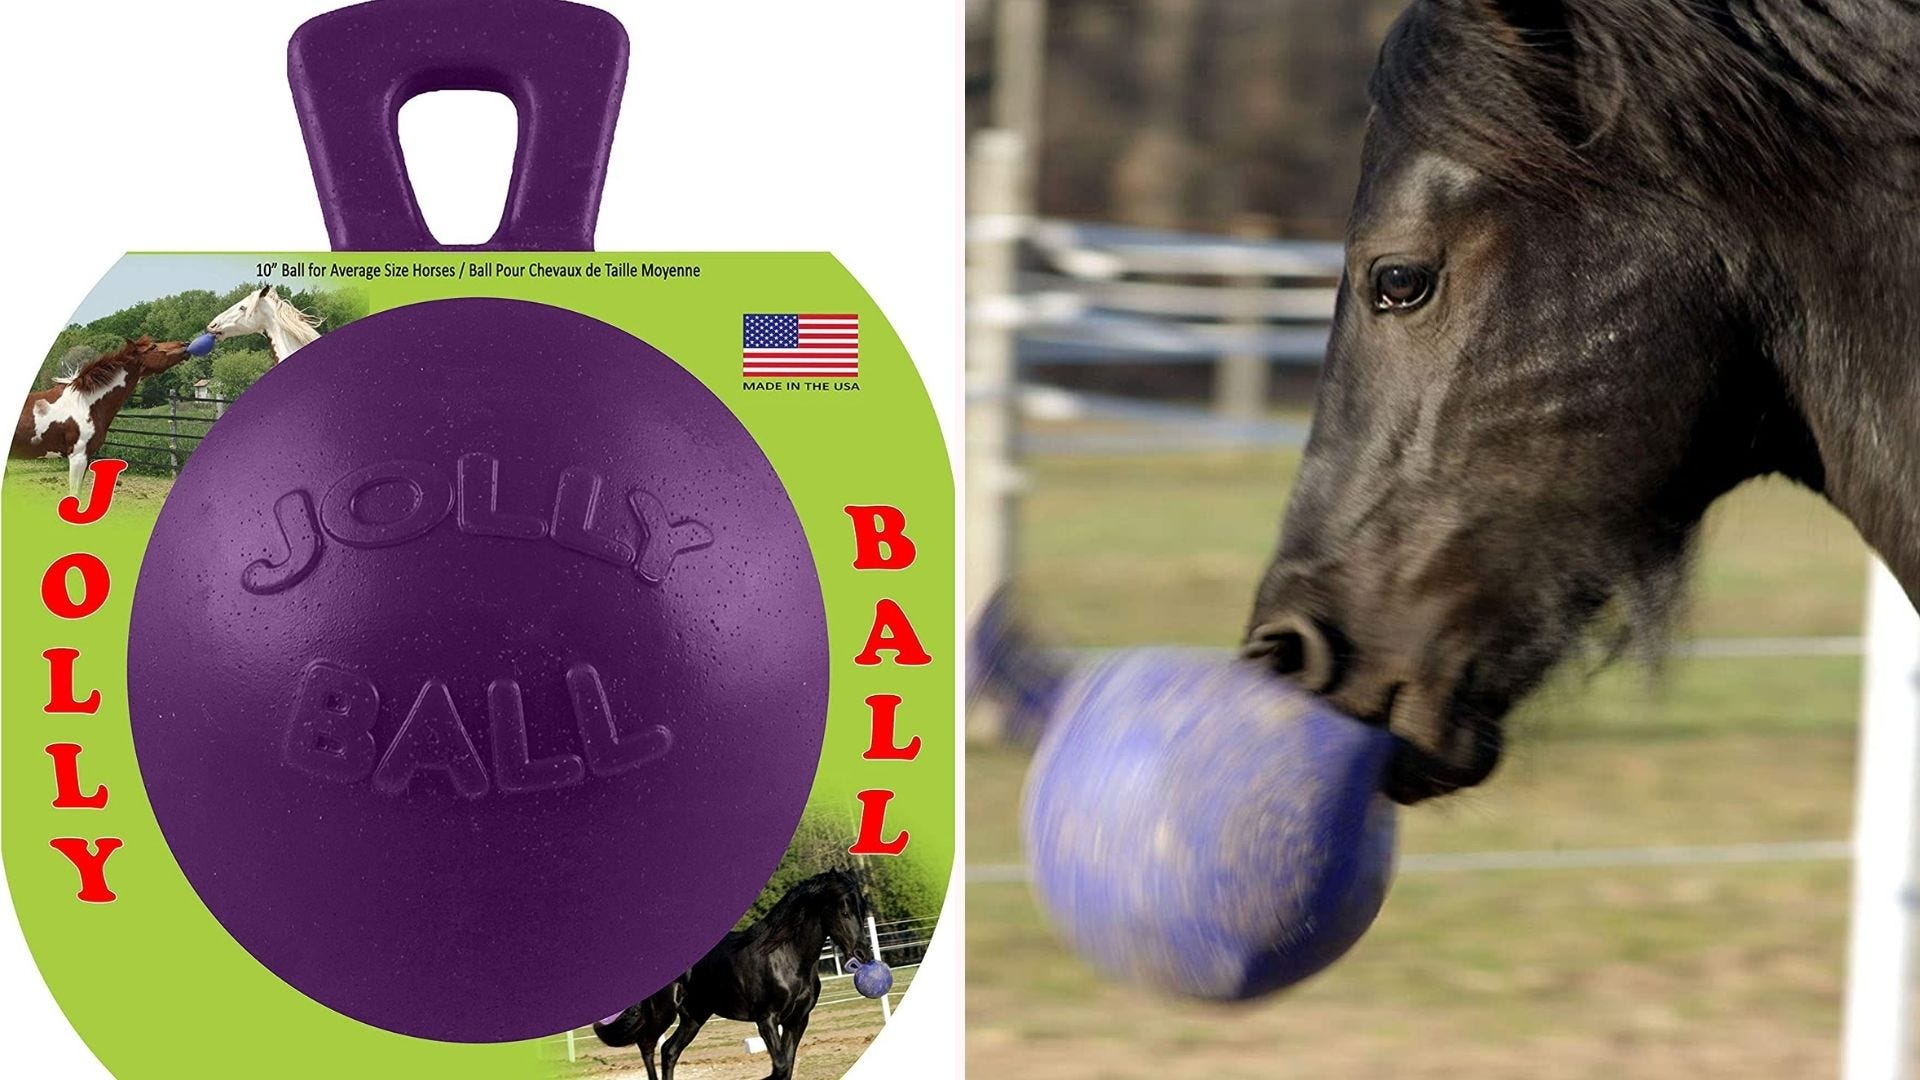 a purple Jolly Ball with a handle on the top is being held in a black horse's mouth